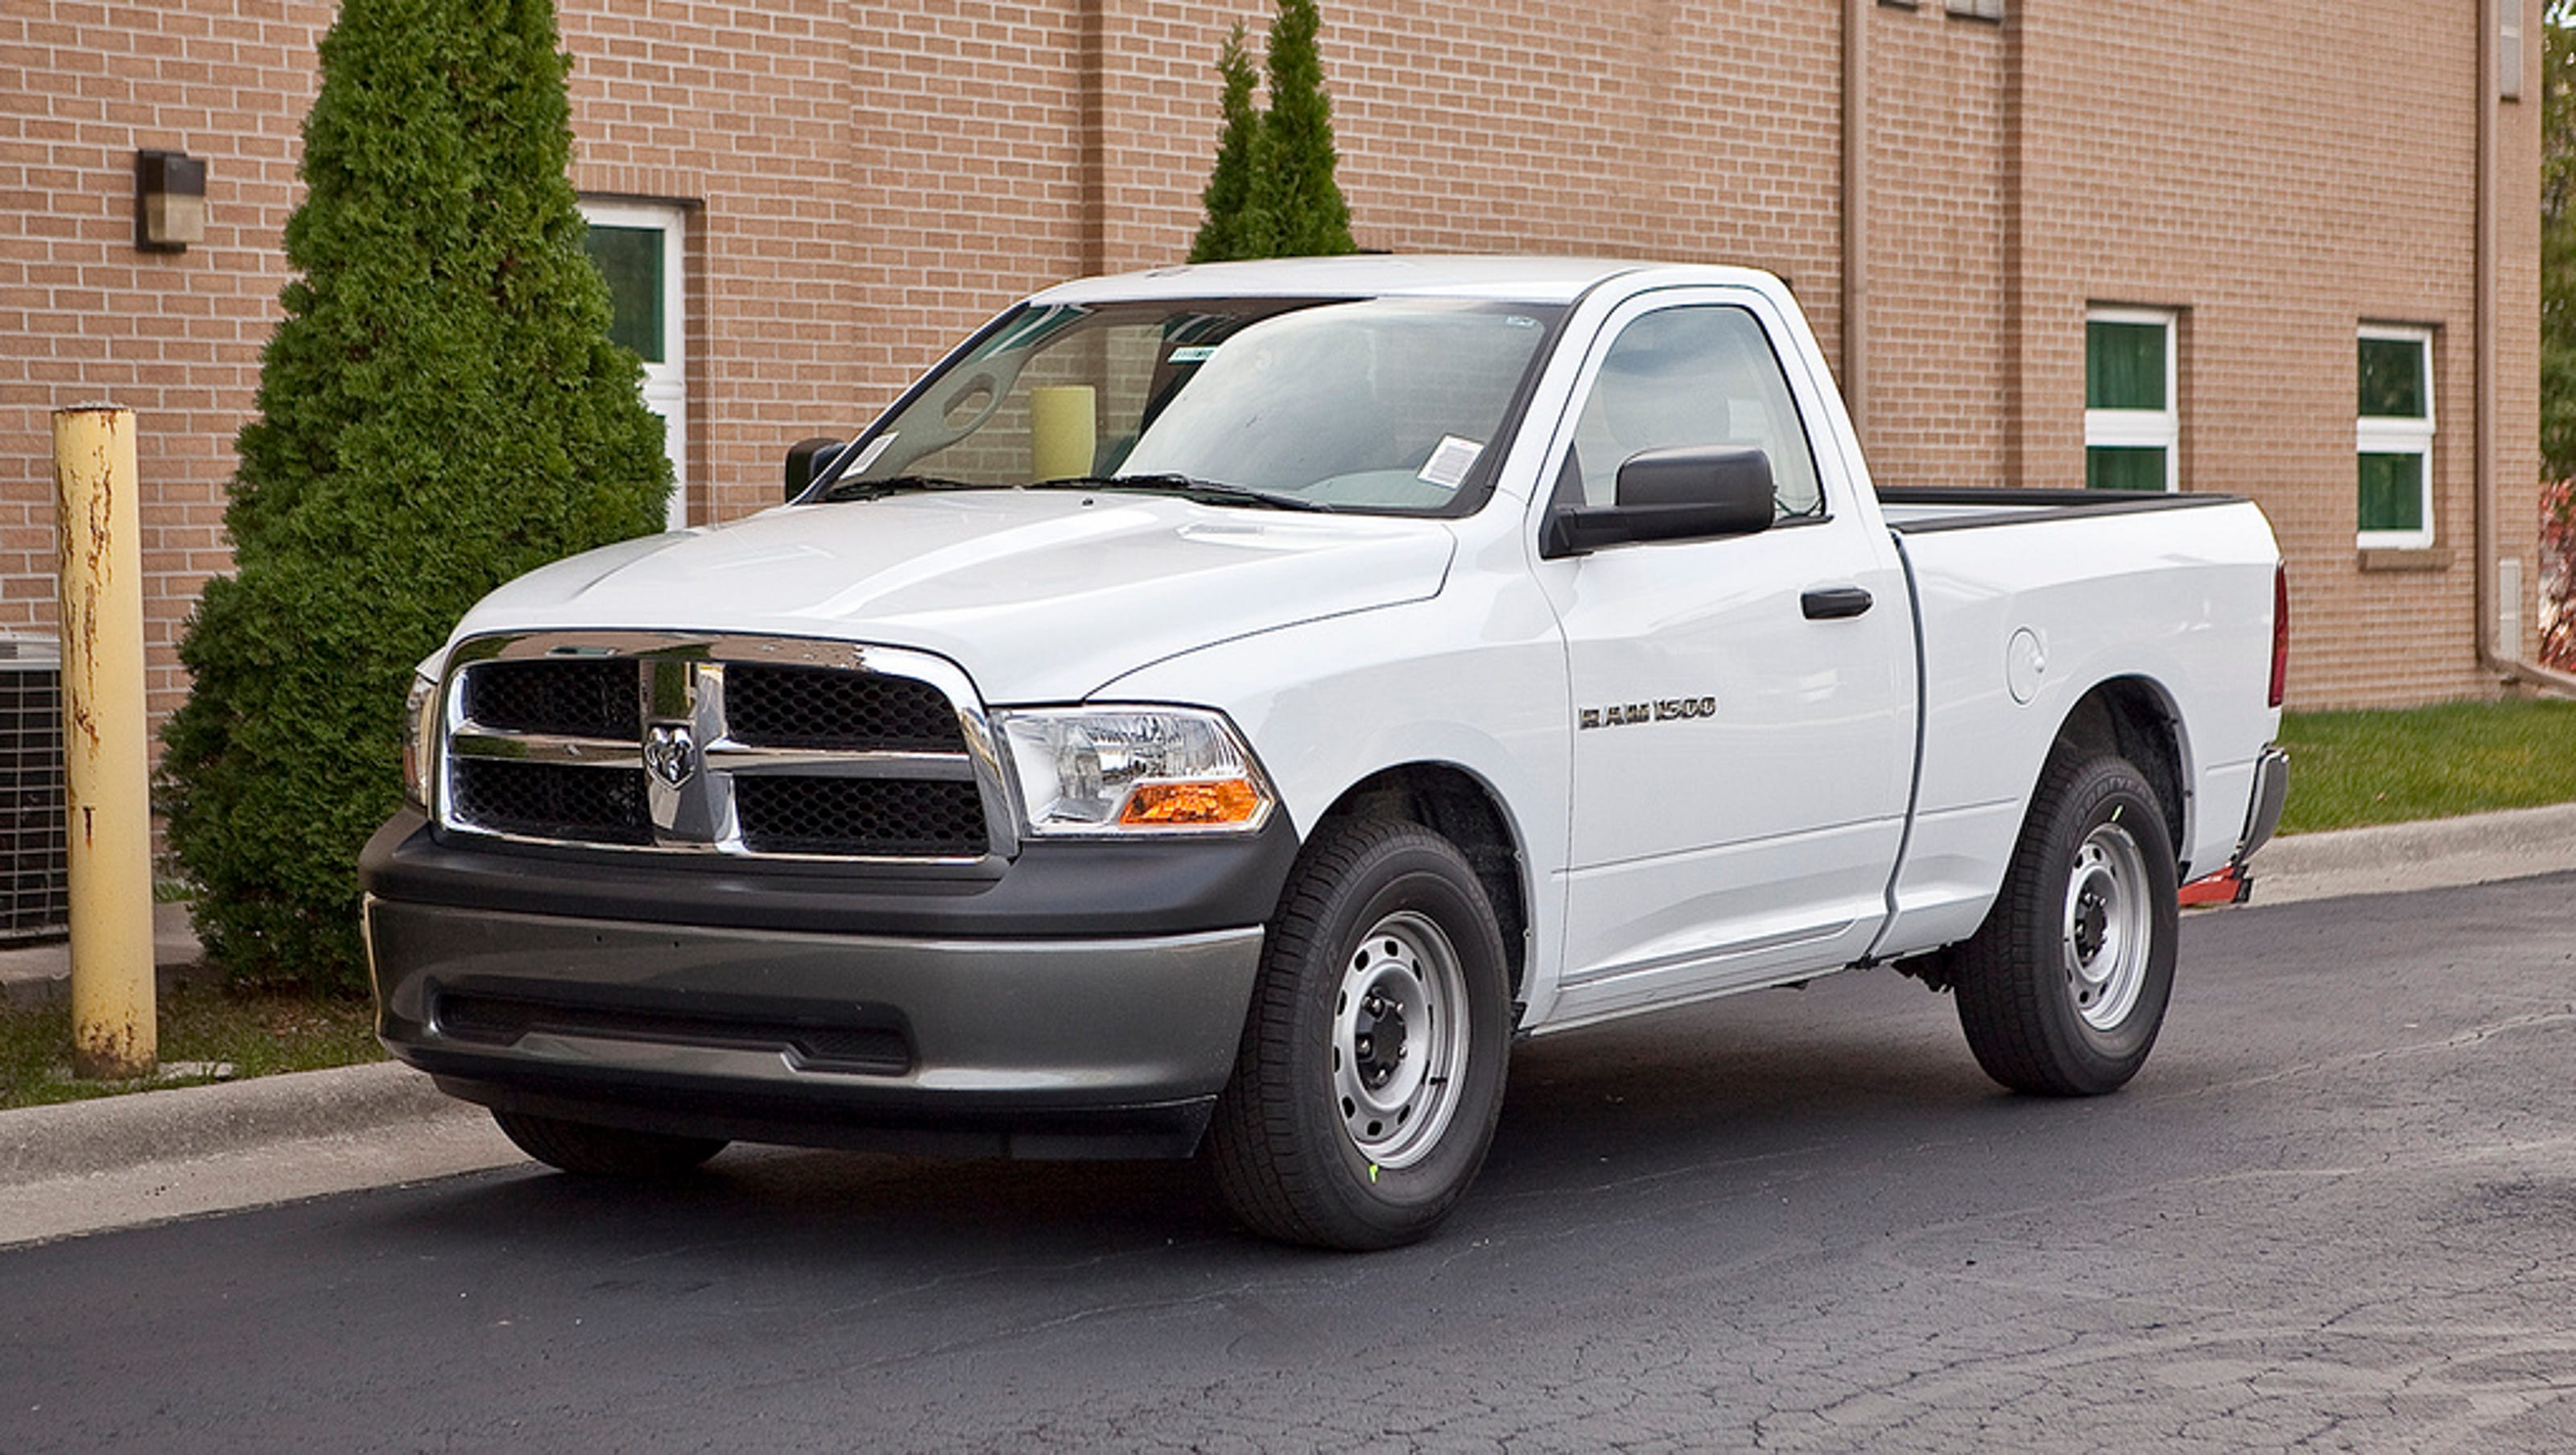 Ram 1500 Pickups From 2009 2012 Recalled To Fix Rusting Fuel Tank Strap